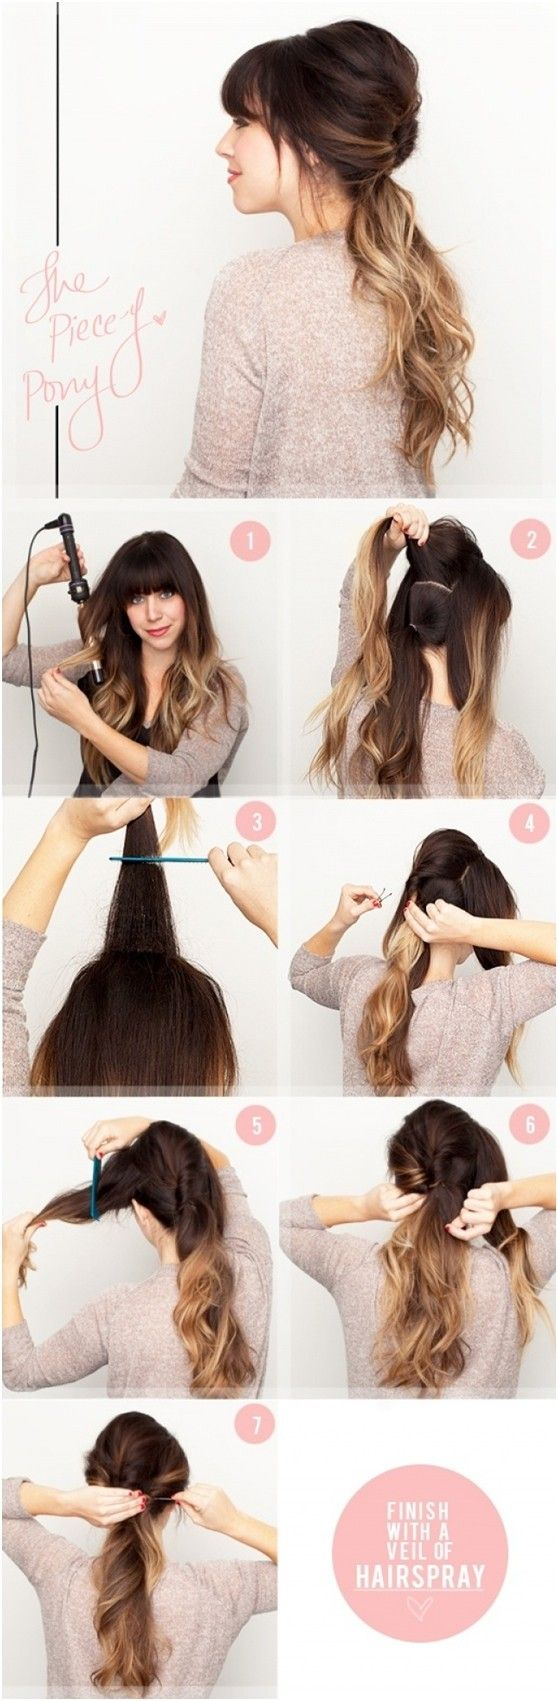 15 Cute and Easy Ponytail Hairstyles Tutorials | PoPular Haircuts